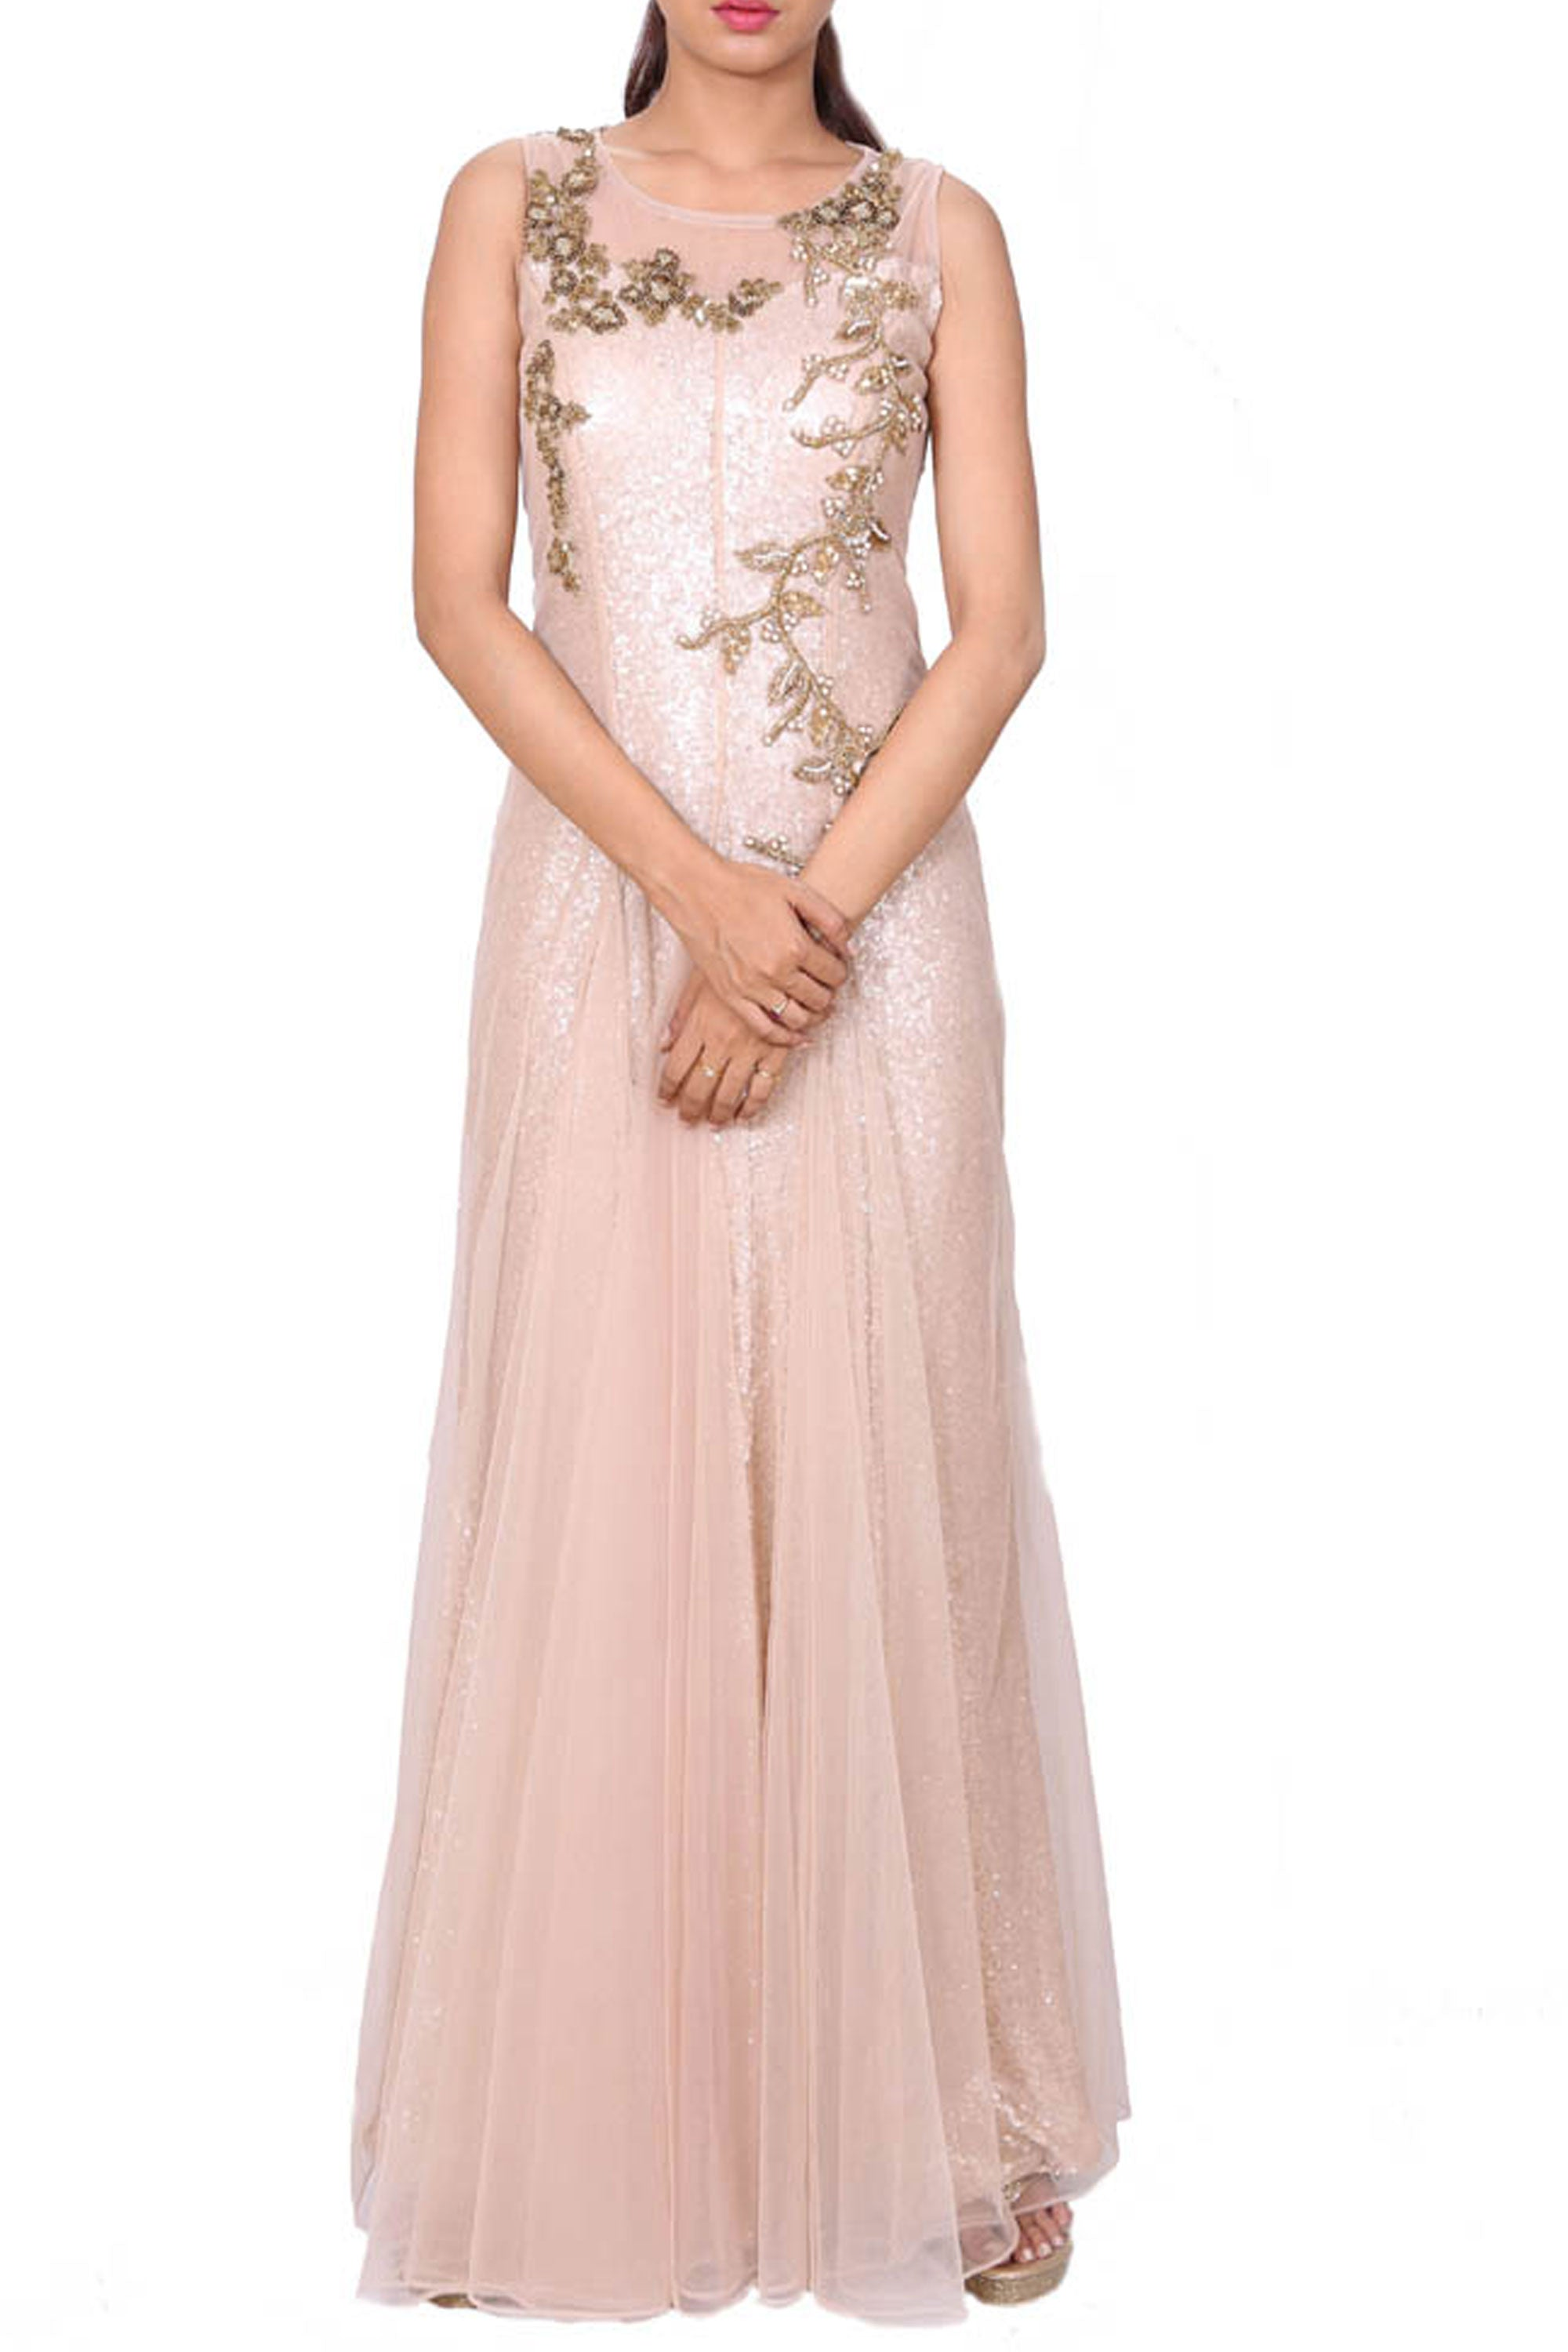 Beige Evening Gown With Gold-Moti Embroidery | VIVA-LUXE